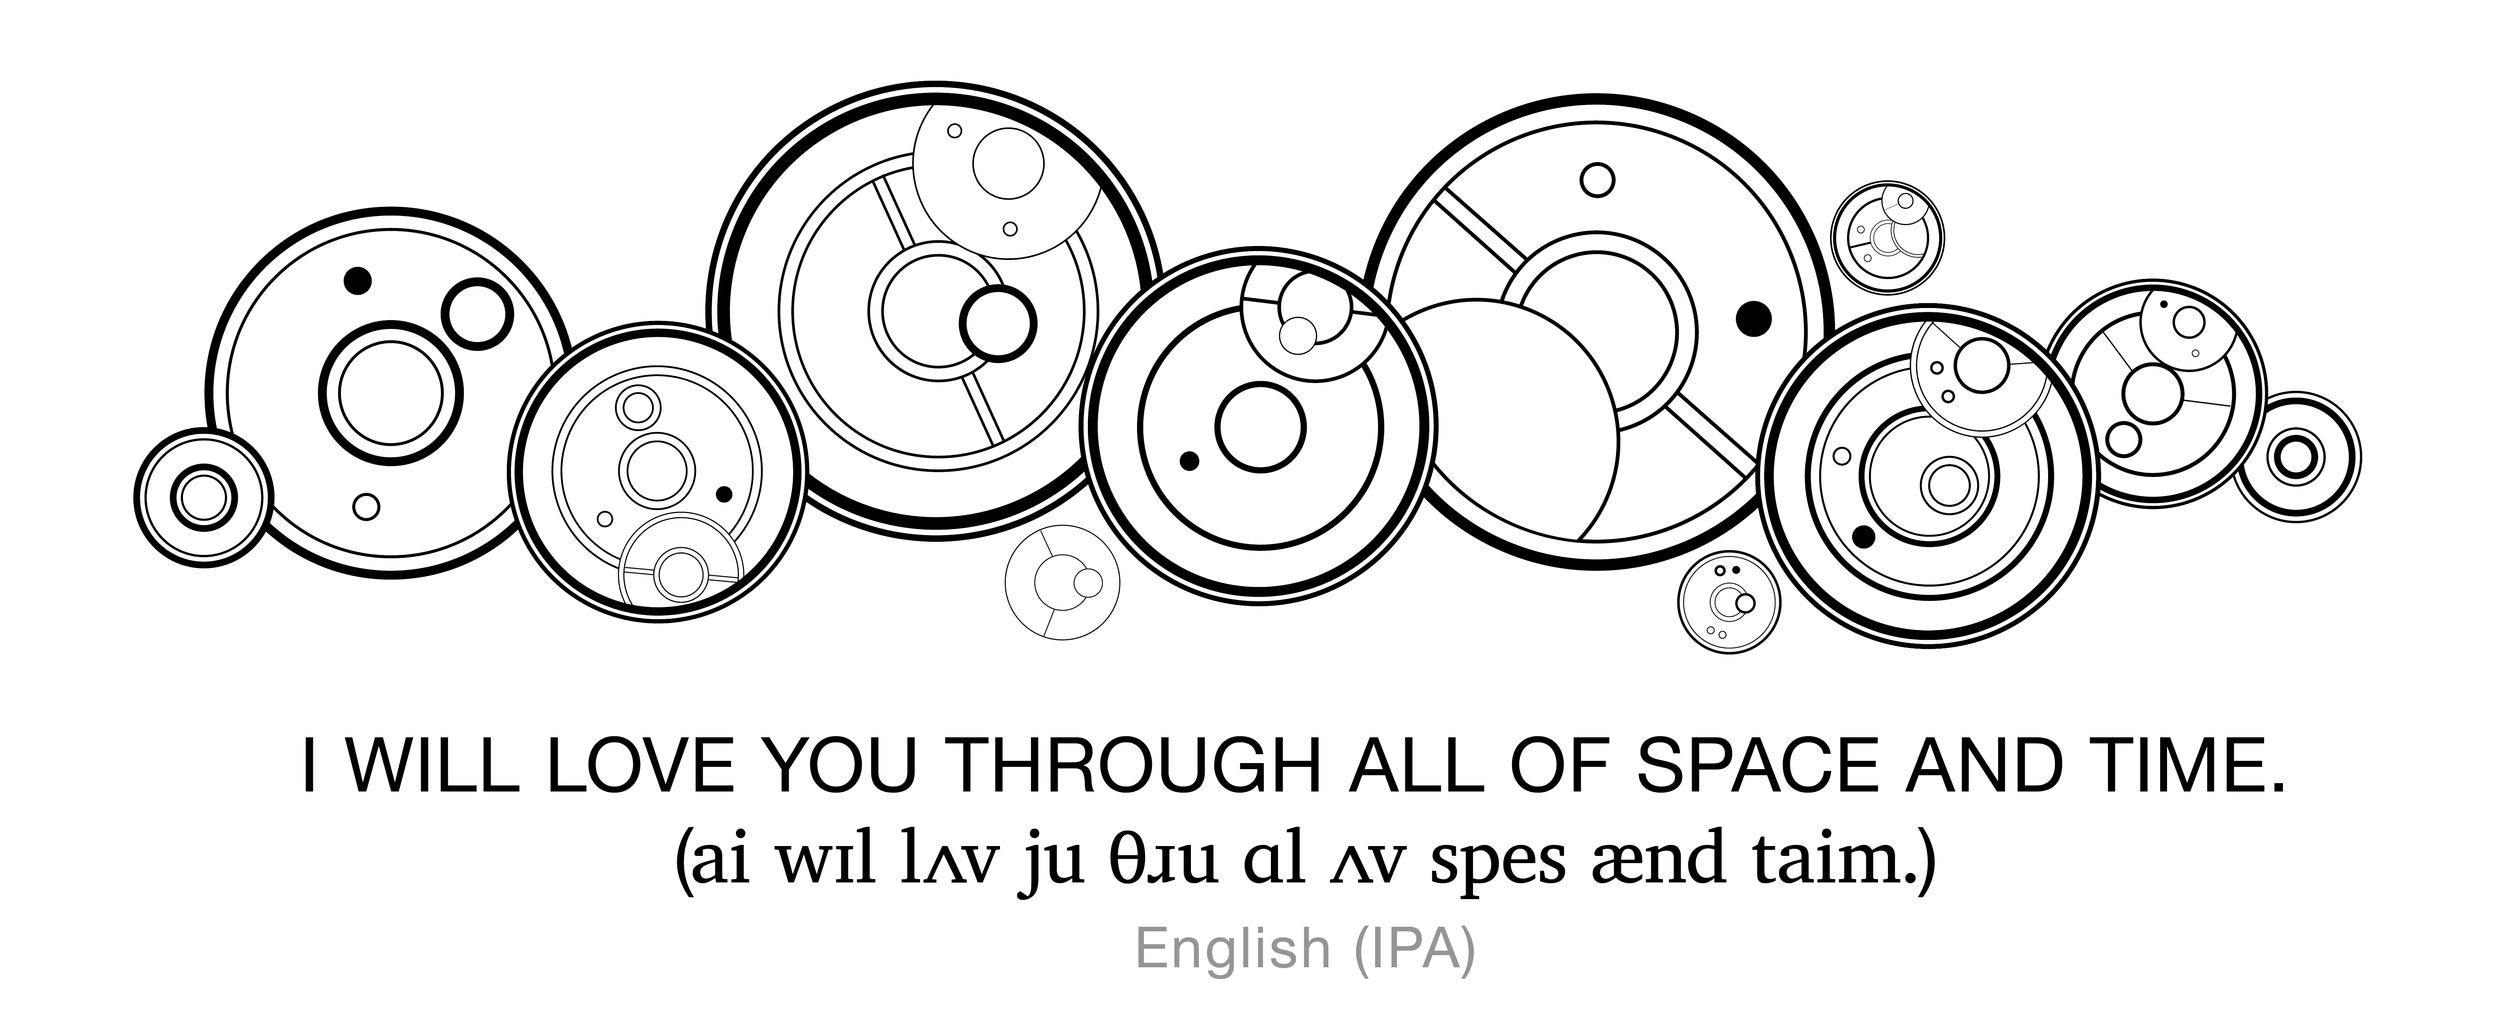 IWillLoveYouThroughAllOfSpaceAndTime-02.png